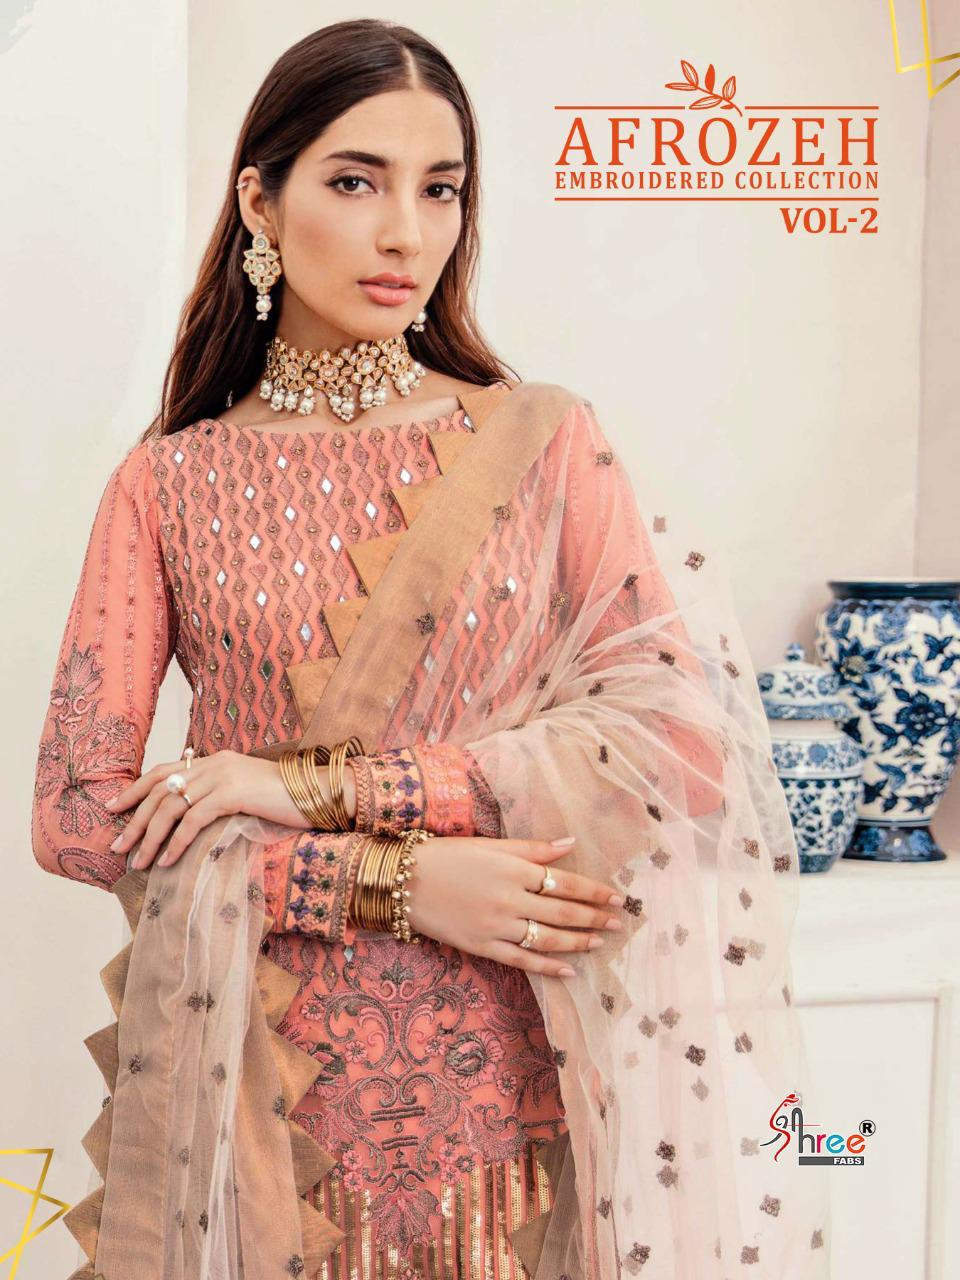 Shree Fabs Afrozeh Embroidered Collection Vol 2 Salwar Suit Wholesale Catalog 6 Pcs 1 - Shree Fabs Afrozeh Embroidered Collection Vol 2 Salwar Suit Wholesale Catalog 6 Pcs